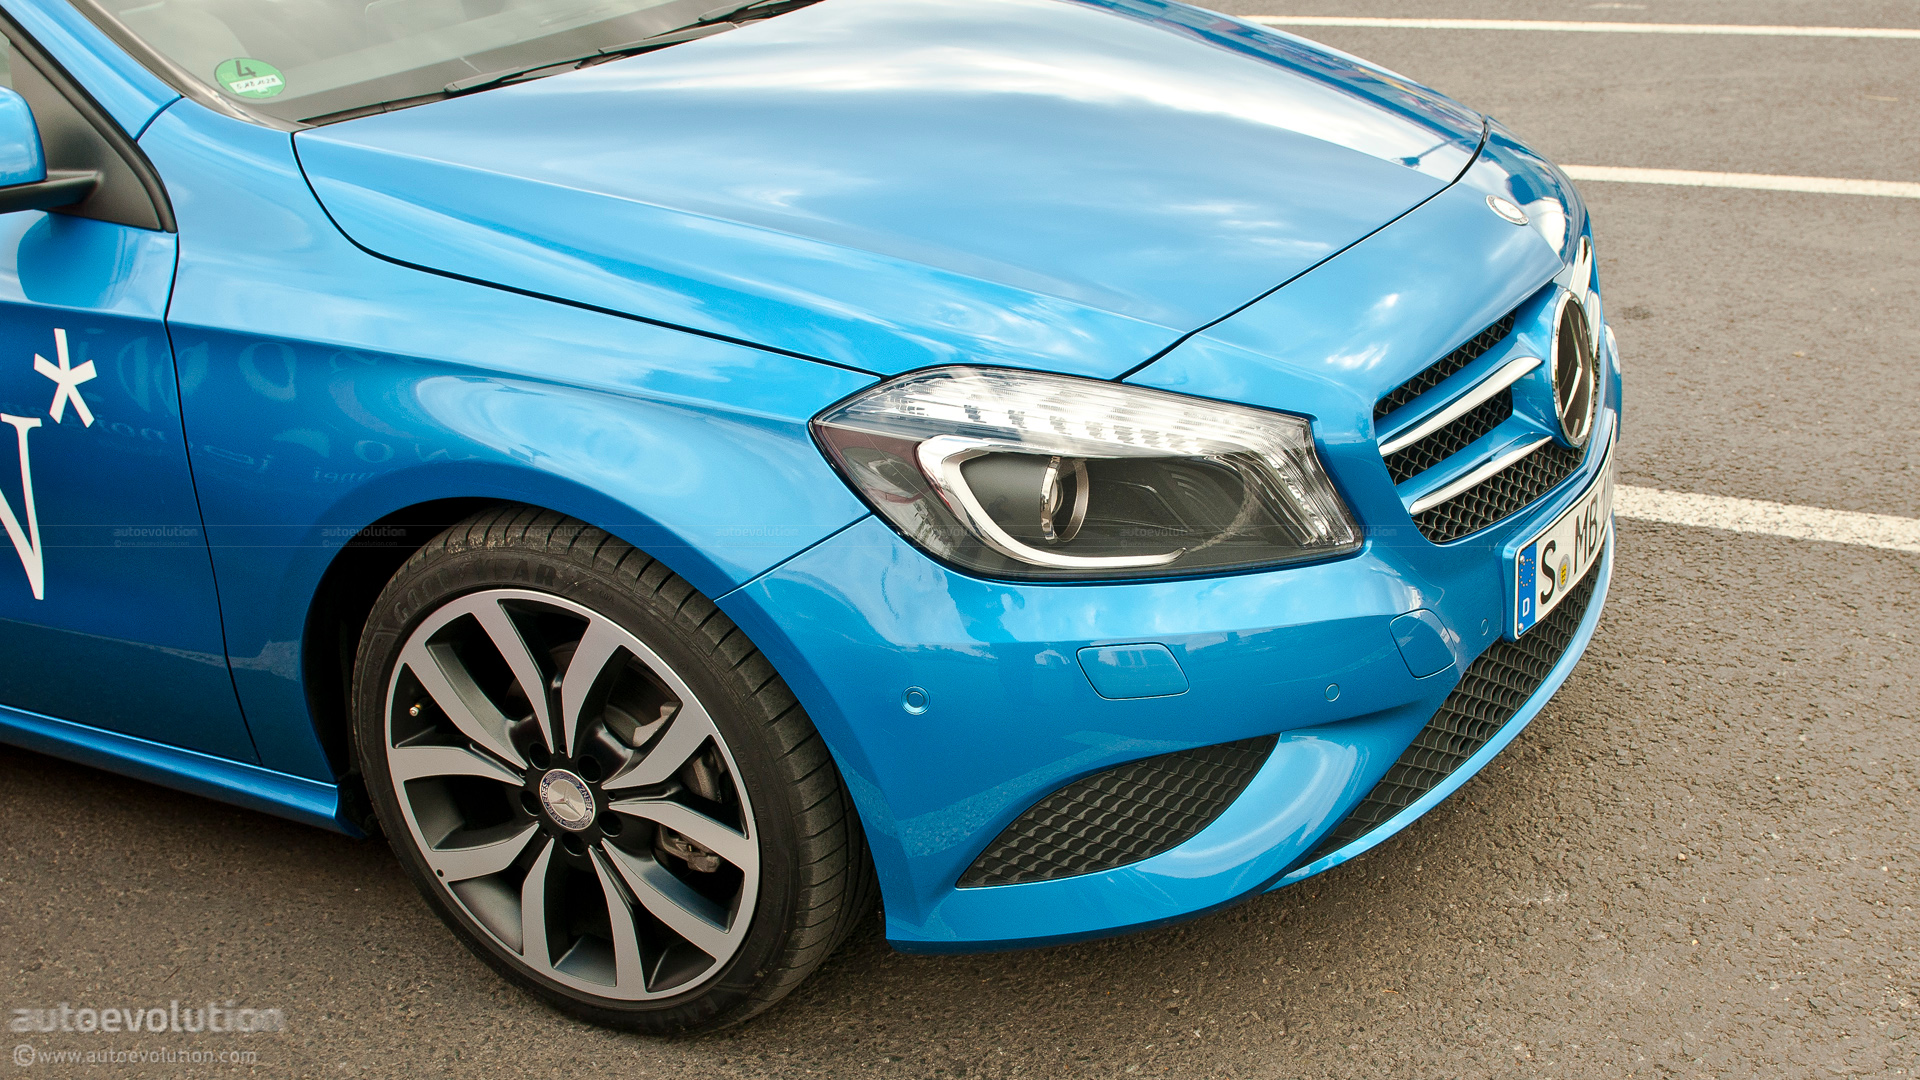 2012 mercedes a class first drive review autoevolution. Black Bedroom Furniture Sets. Home Design Ideas